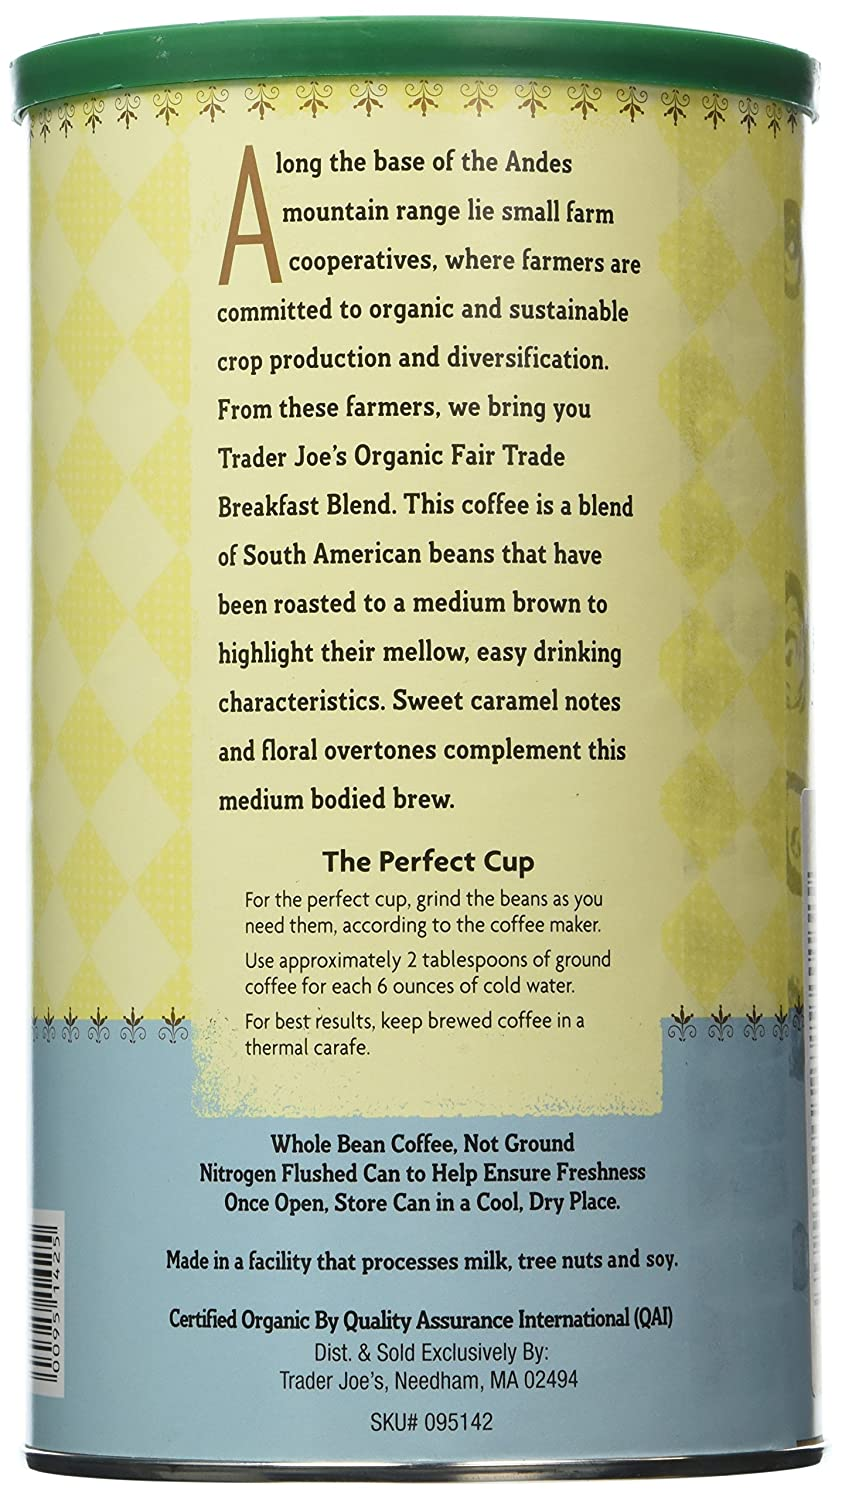 trader joe's organic coffee